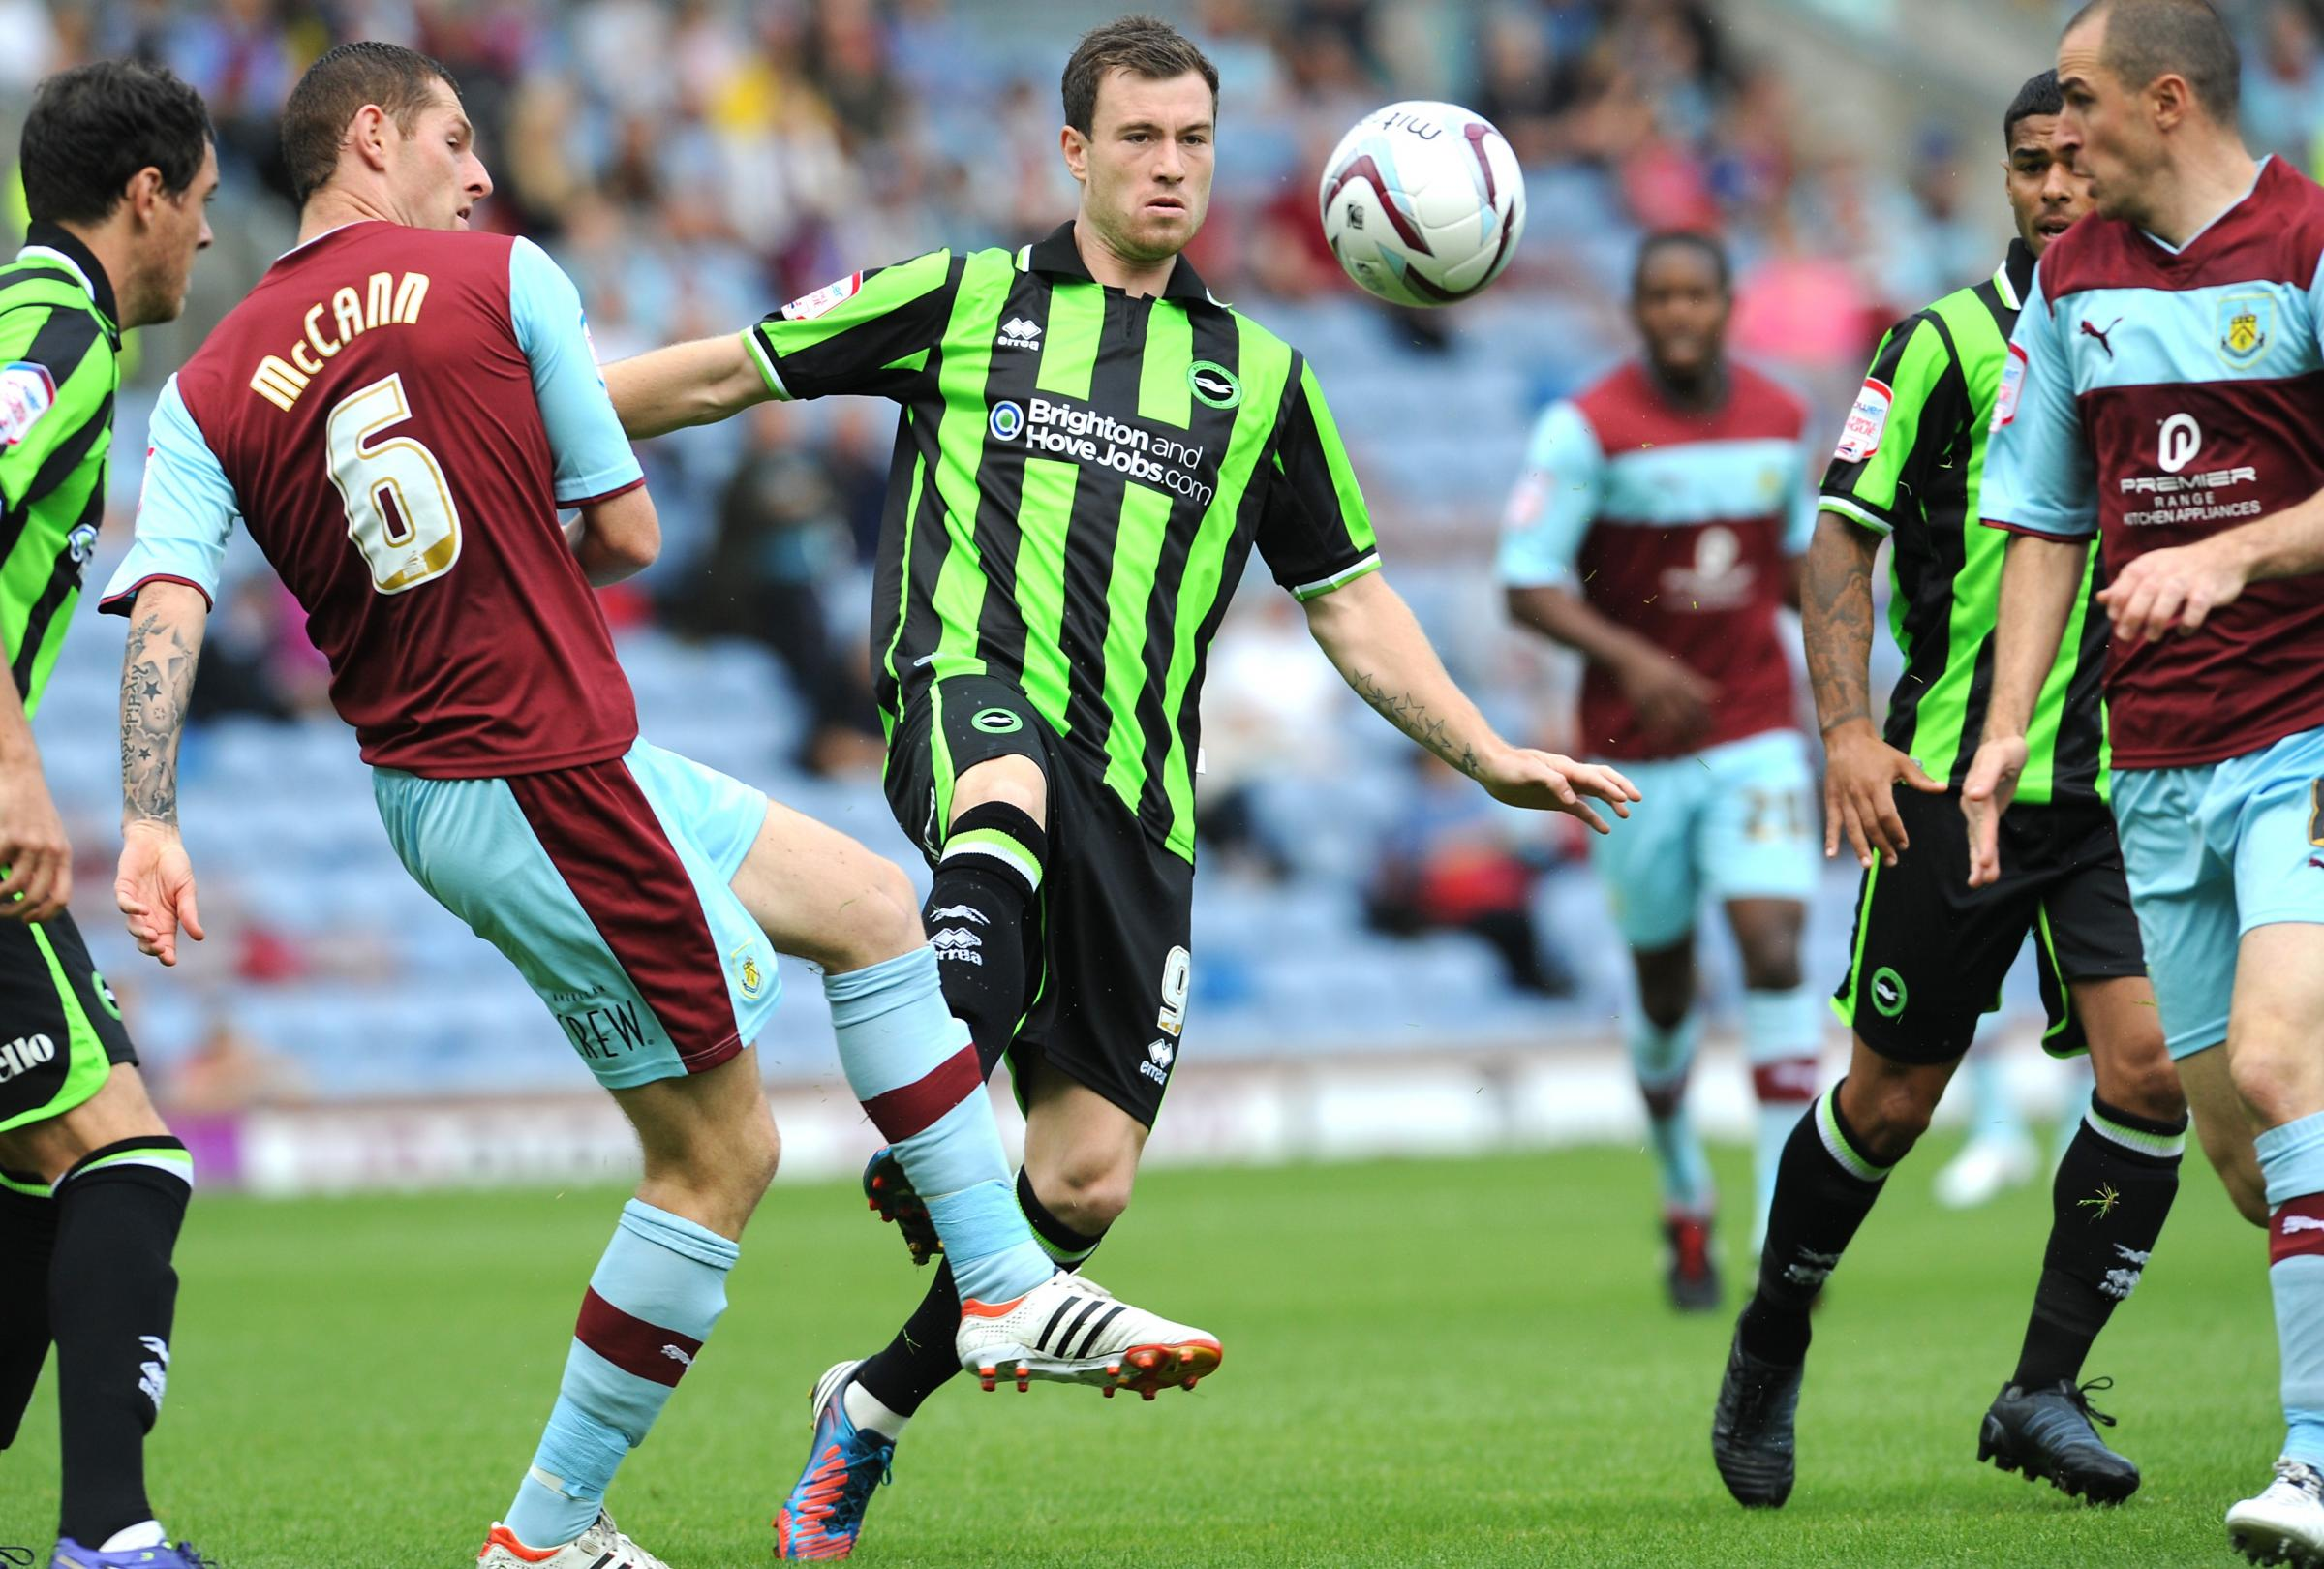 Ashley Barnes in action at Turf Moor last season. It is set to become his new home ground